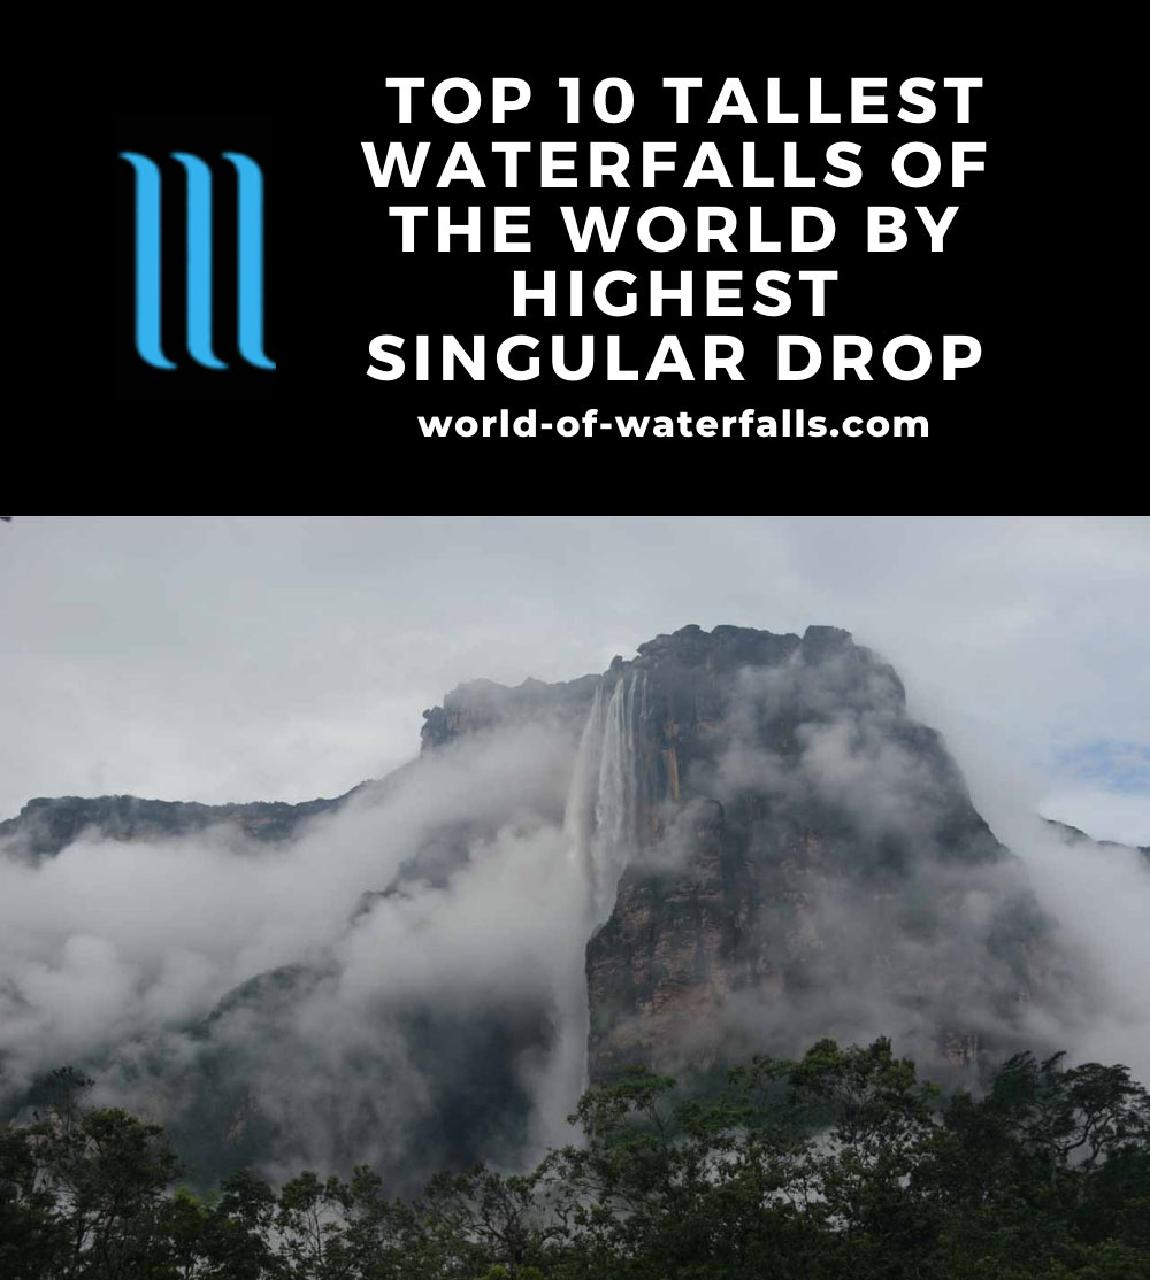 The 10 Tallest Waterfalls of the World based on highest singular drop